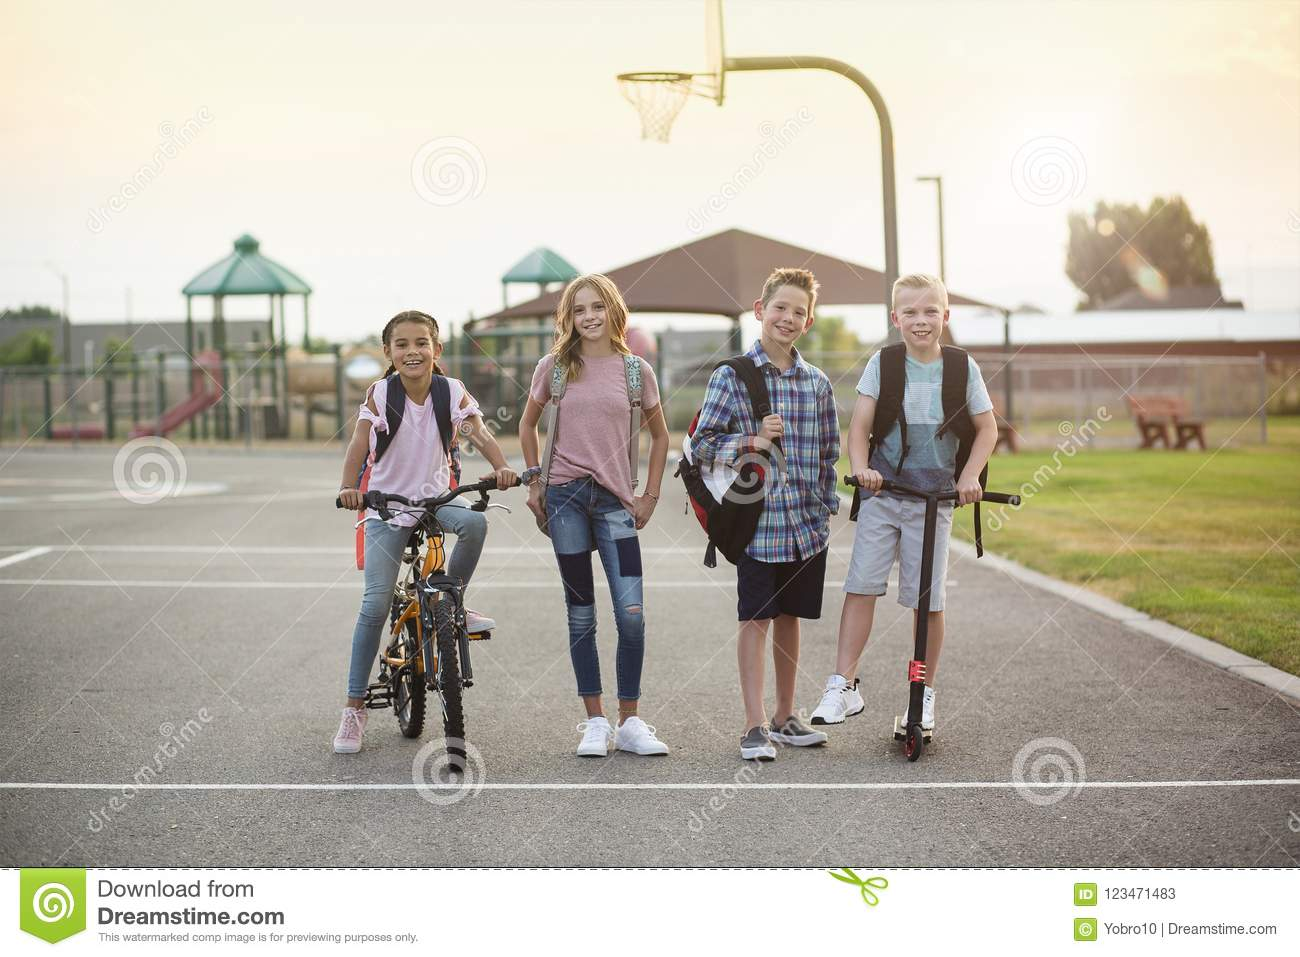 Group of smiling elementary school students on their way home